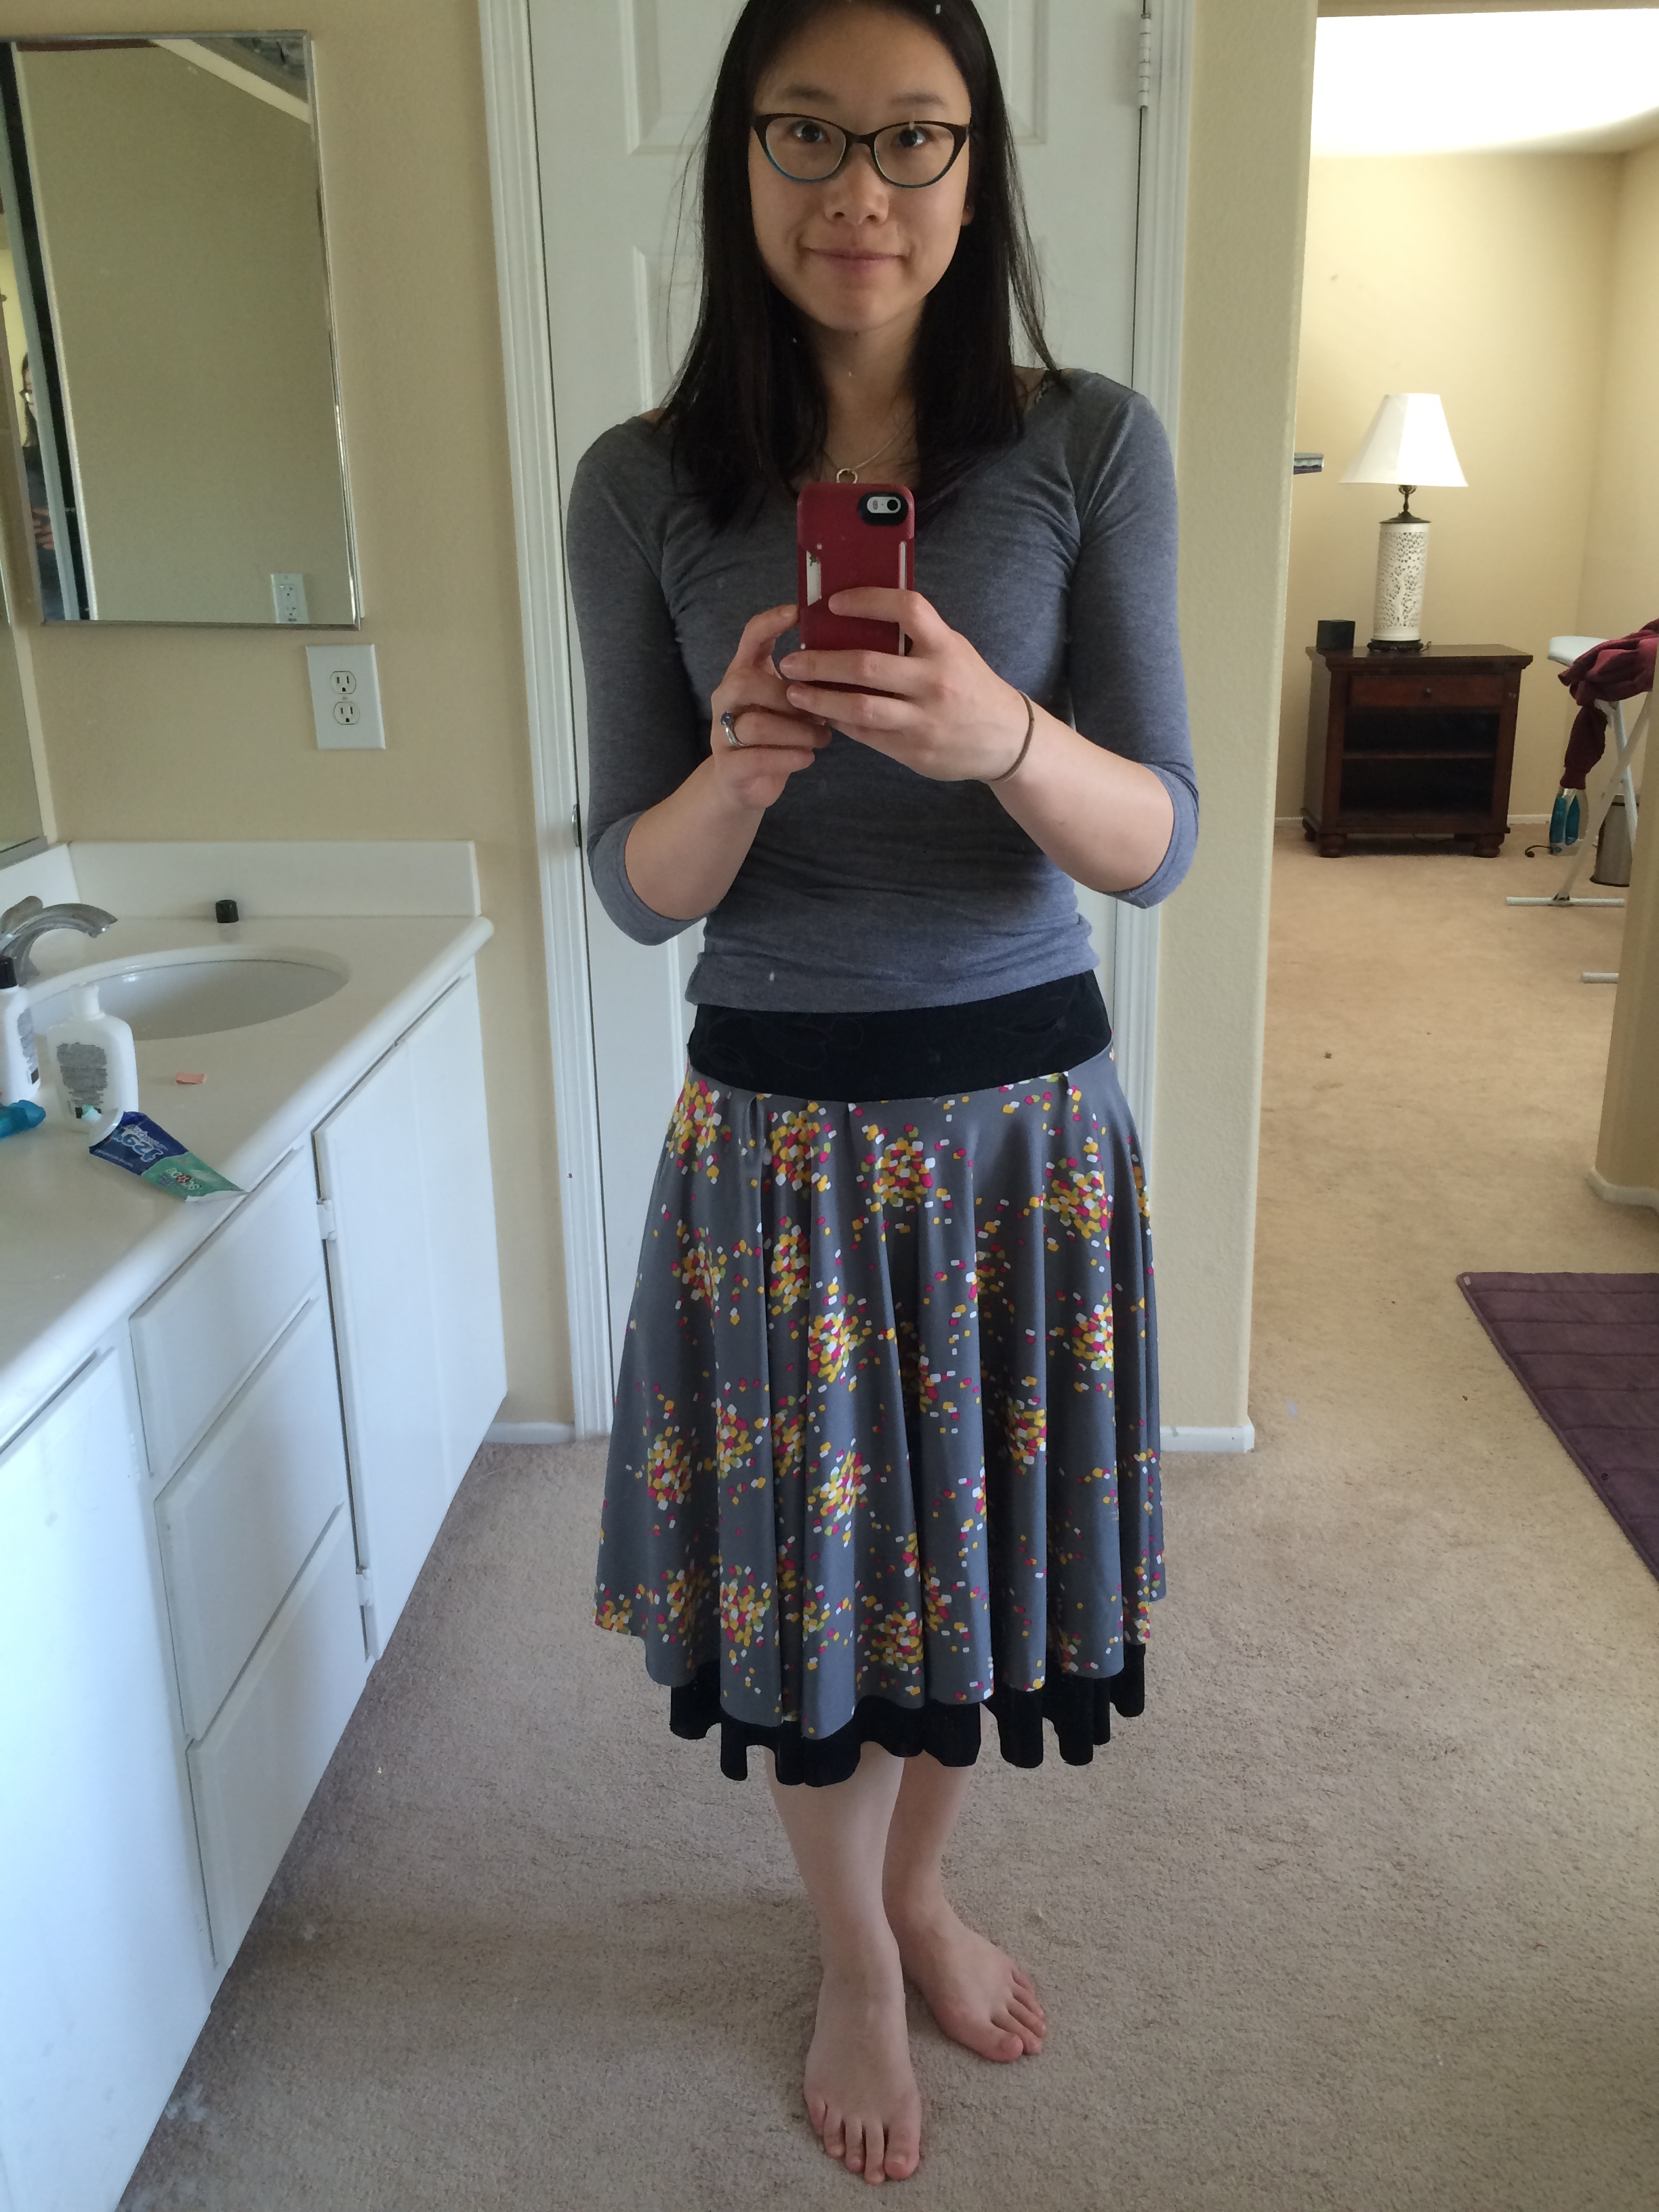 My second reversible skirt with pockets! Gray with confetti on one side, black floral on the reverse side. If you wear it a certain way, it looks like a 2 tiered skirt! I think it's a cool effect that wasn't exactly intentional, but I like it better this way.